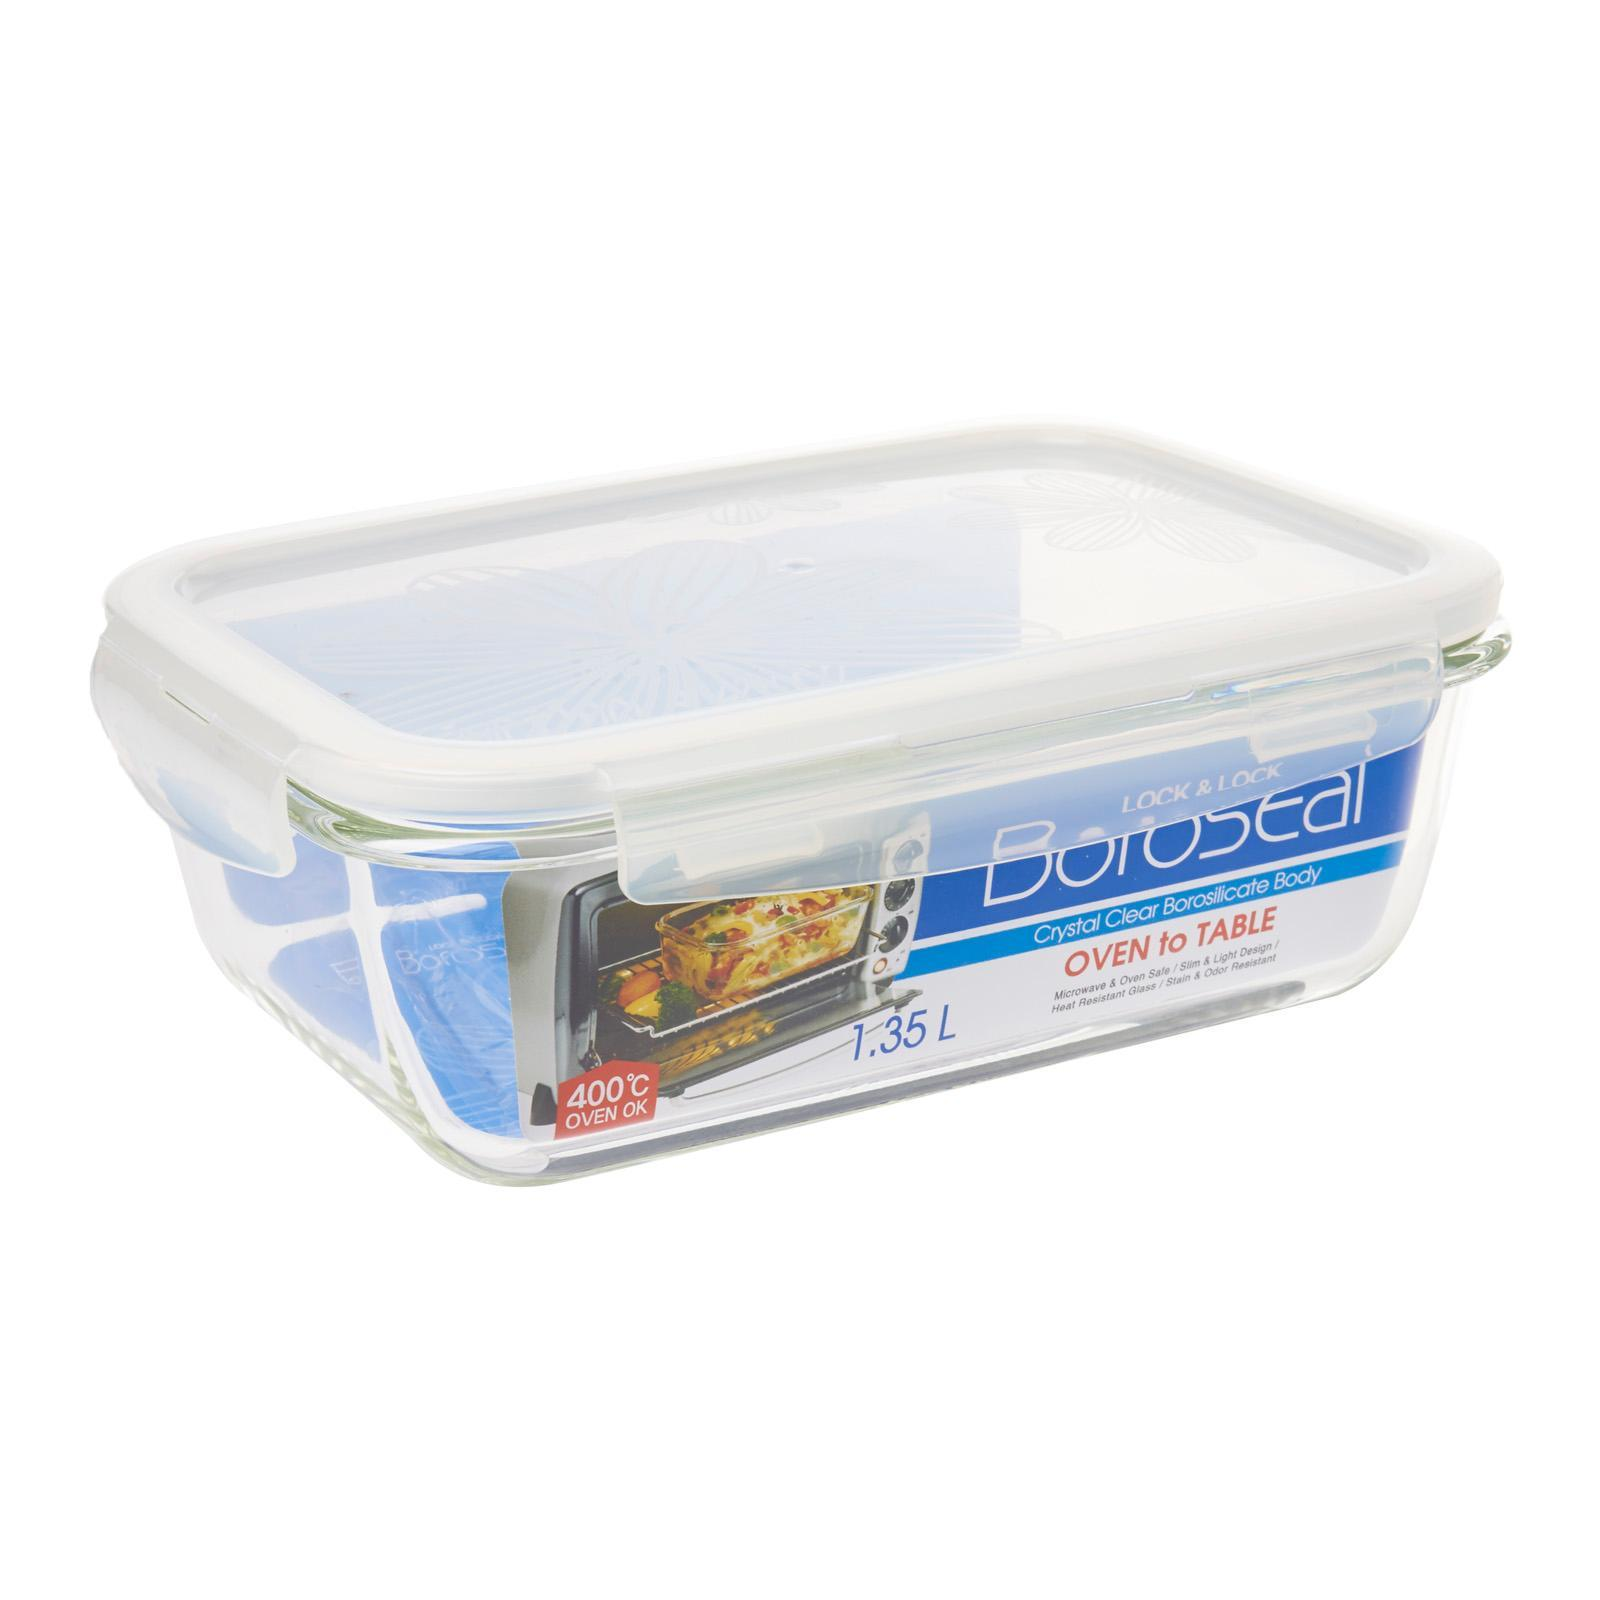 Lock and Lock Boroseal Heat Resist Glass Rectangle 1.35L